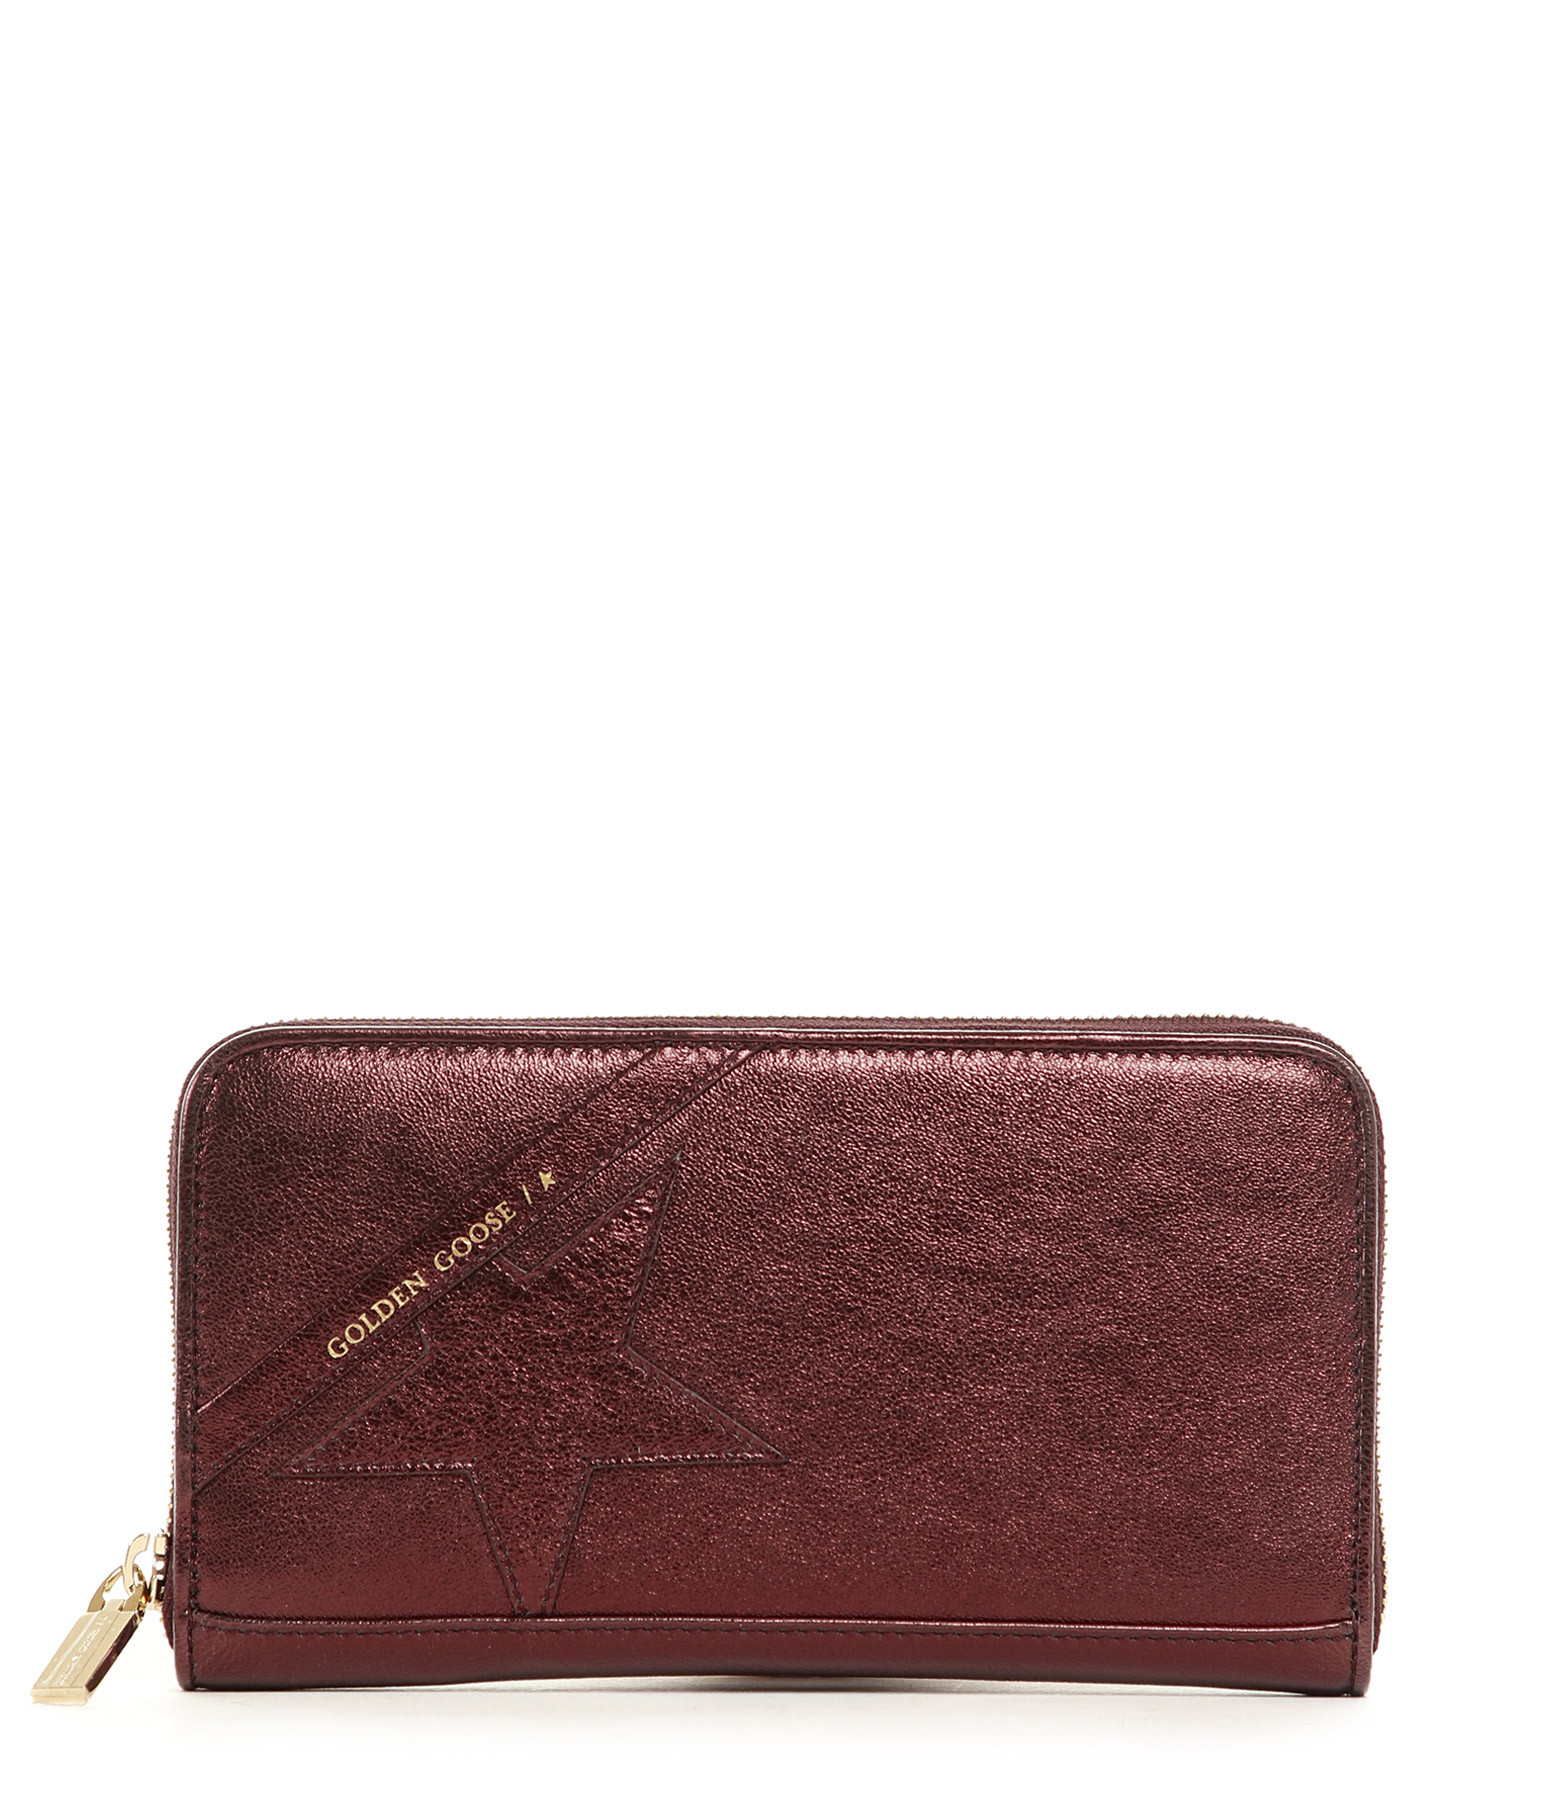 GOLDEN GOOSE - Portefeuille Star Large Cuir Aubergine